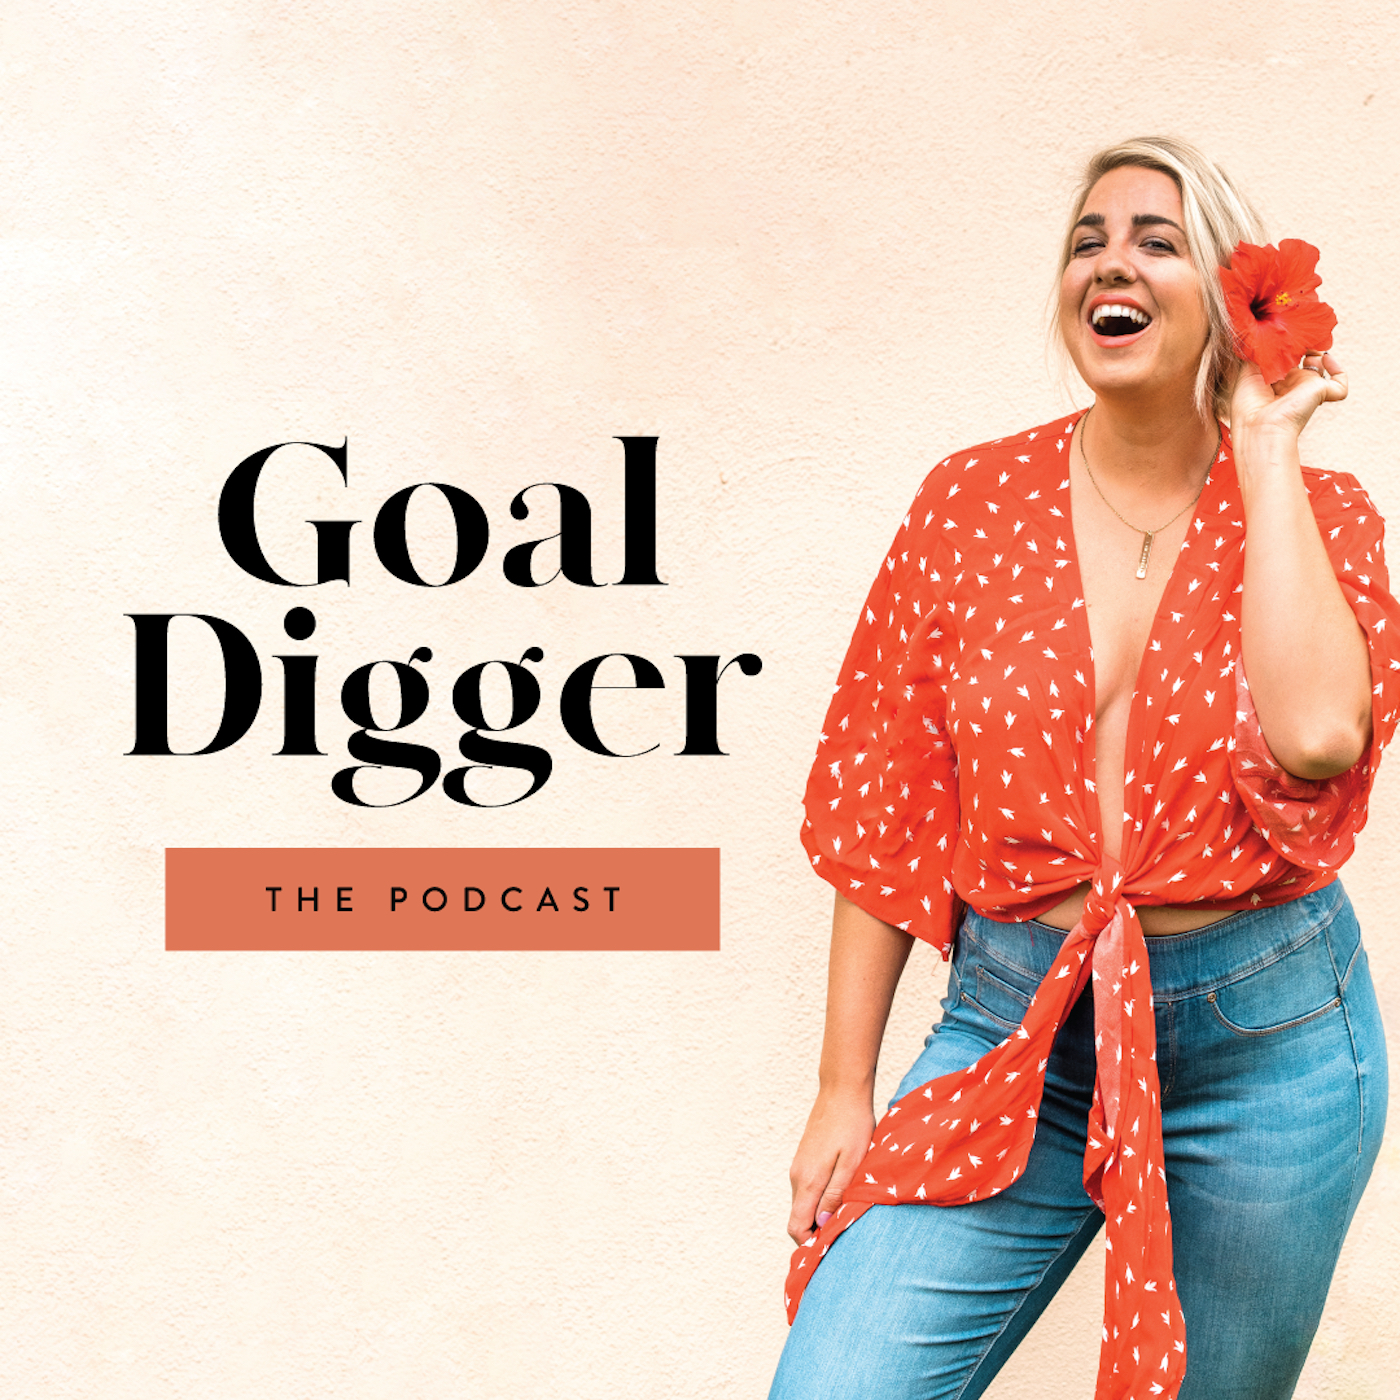 Goal Digger PodcastHosted by Jenna Kutcher - Jenna is honestly my fav! She's got such great energy and she shares some serious GOLD when it comes to online marketing, Pinterest, Instagram, email lists. She also hosts interviews with really inspiring business owners.